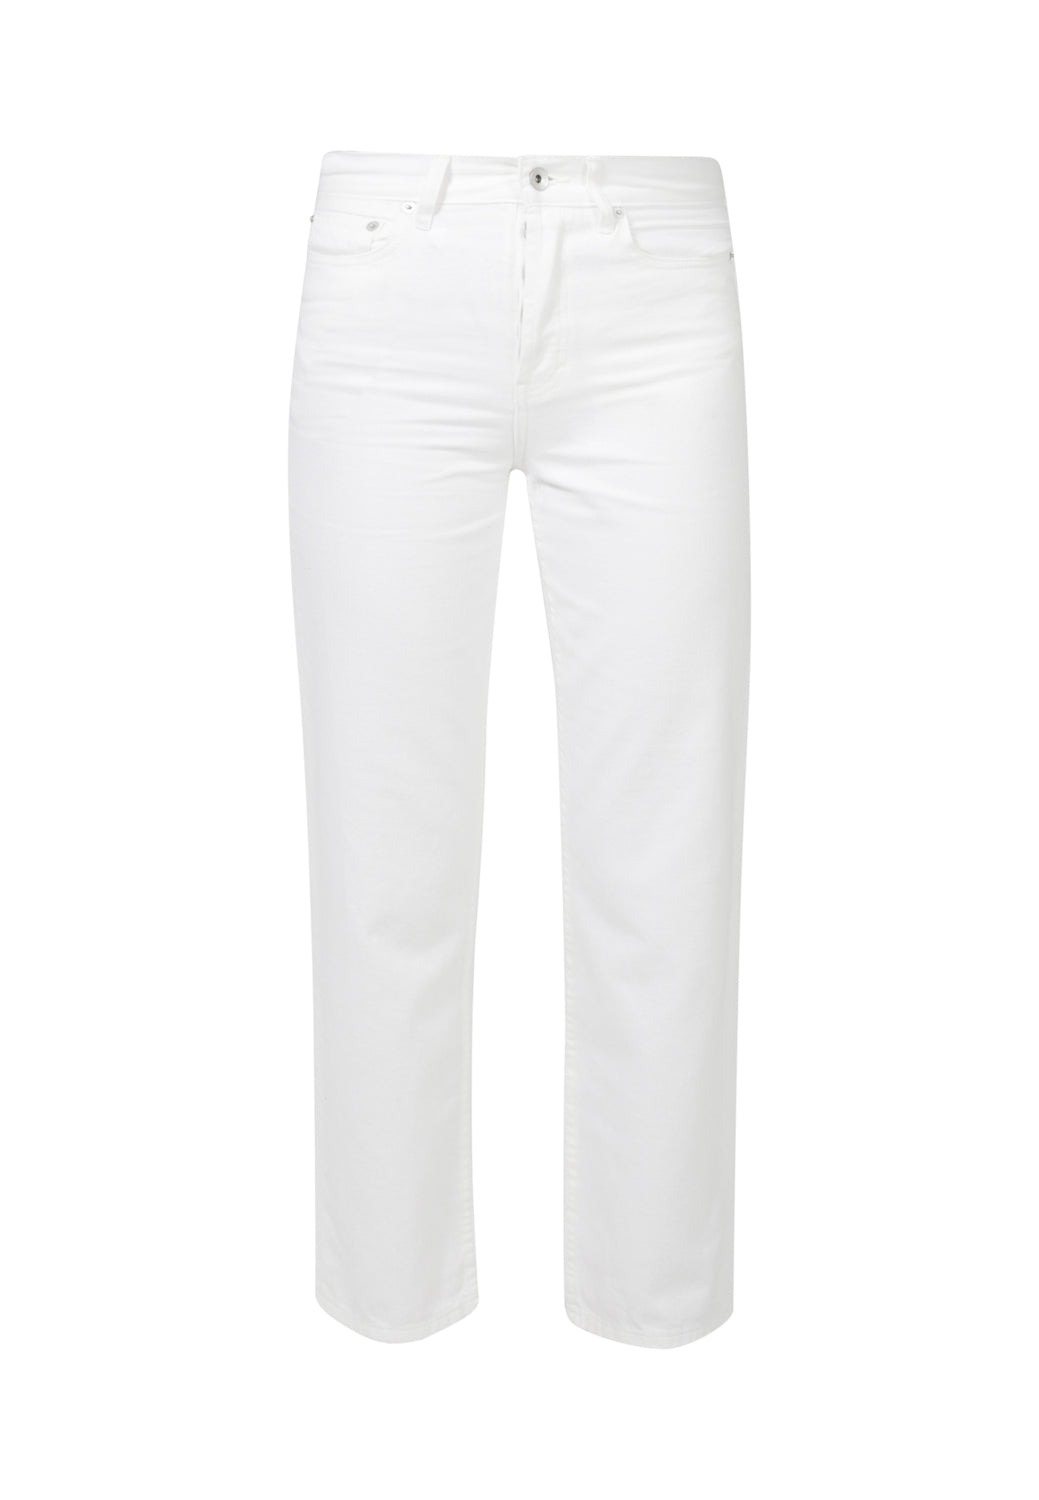 LIBBY // Organic Straight Leg Slim Fit Jeans in White Denim - Monkee Genes Organic Jeans Denim - Women's Slim Fit Monkee Genes Official  Monkee Genes Official